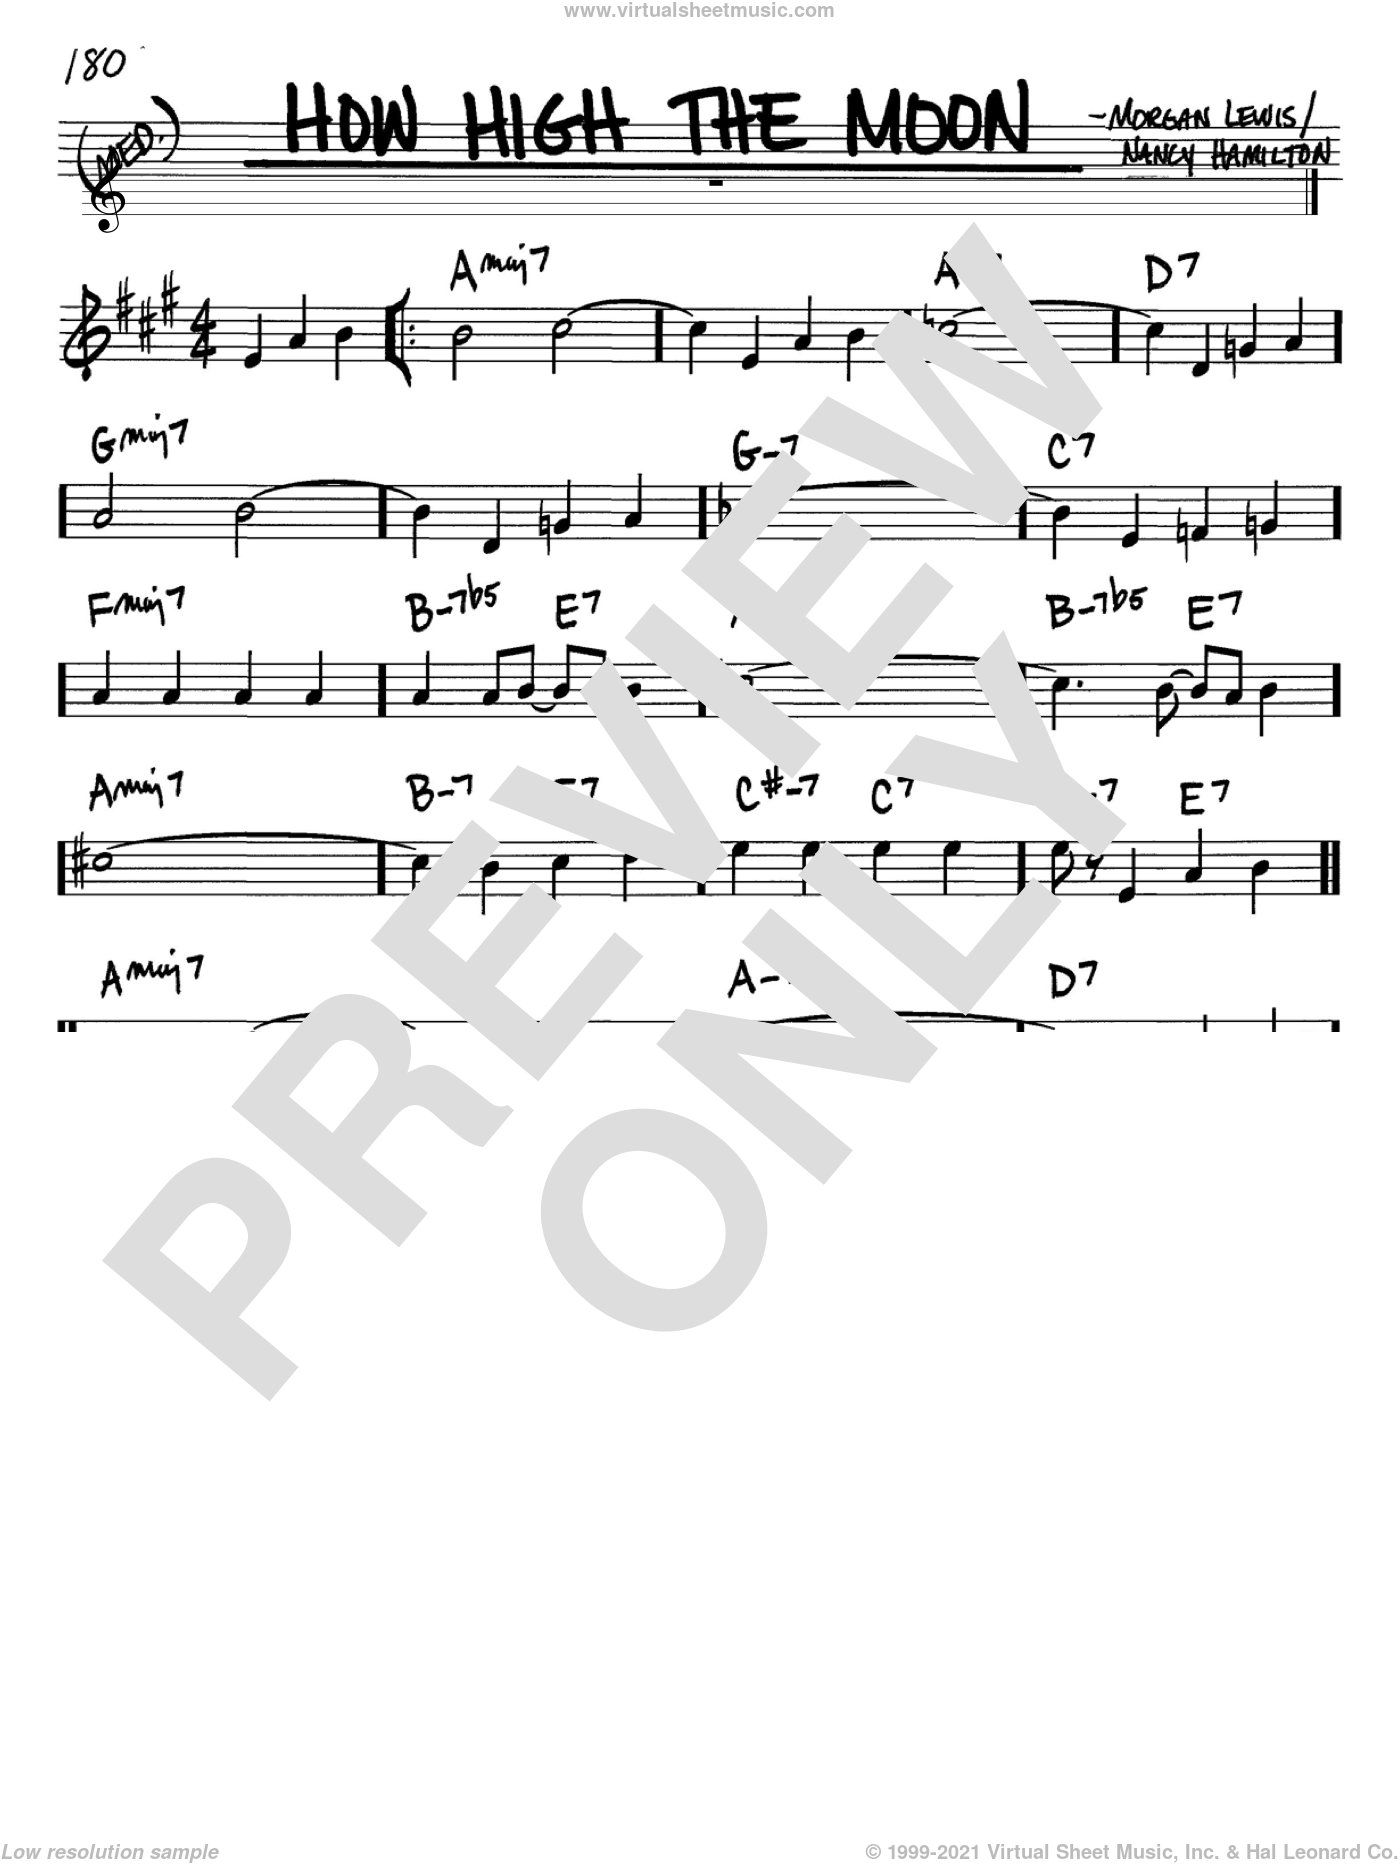 How High The Moon sheet music for voice and other instruments (Bb) by Nancy Hamilton, Les Paul and Morgan Lewis. Score Image Preview.